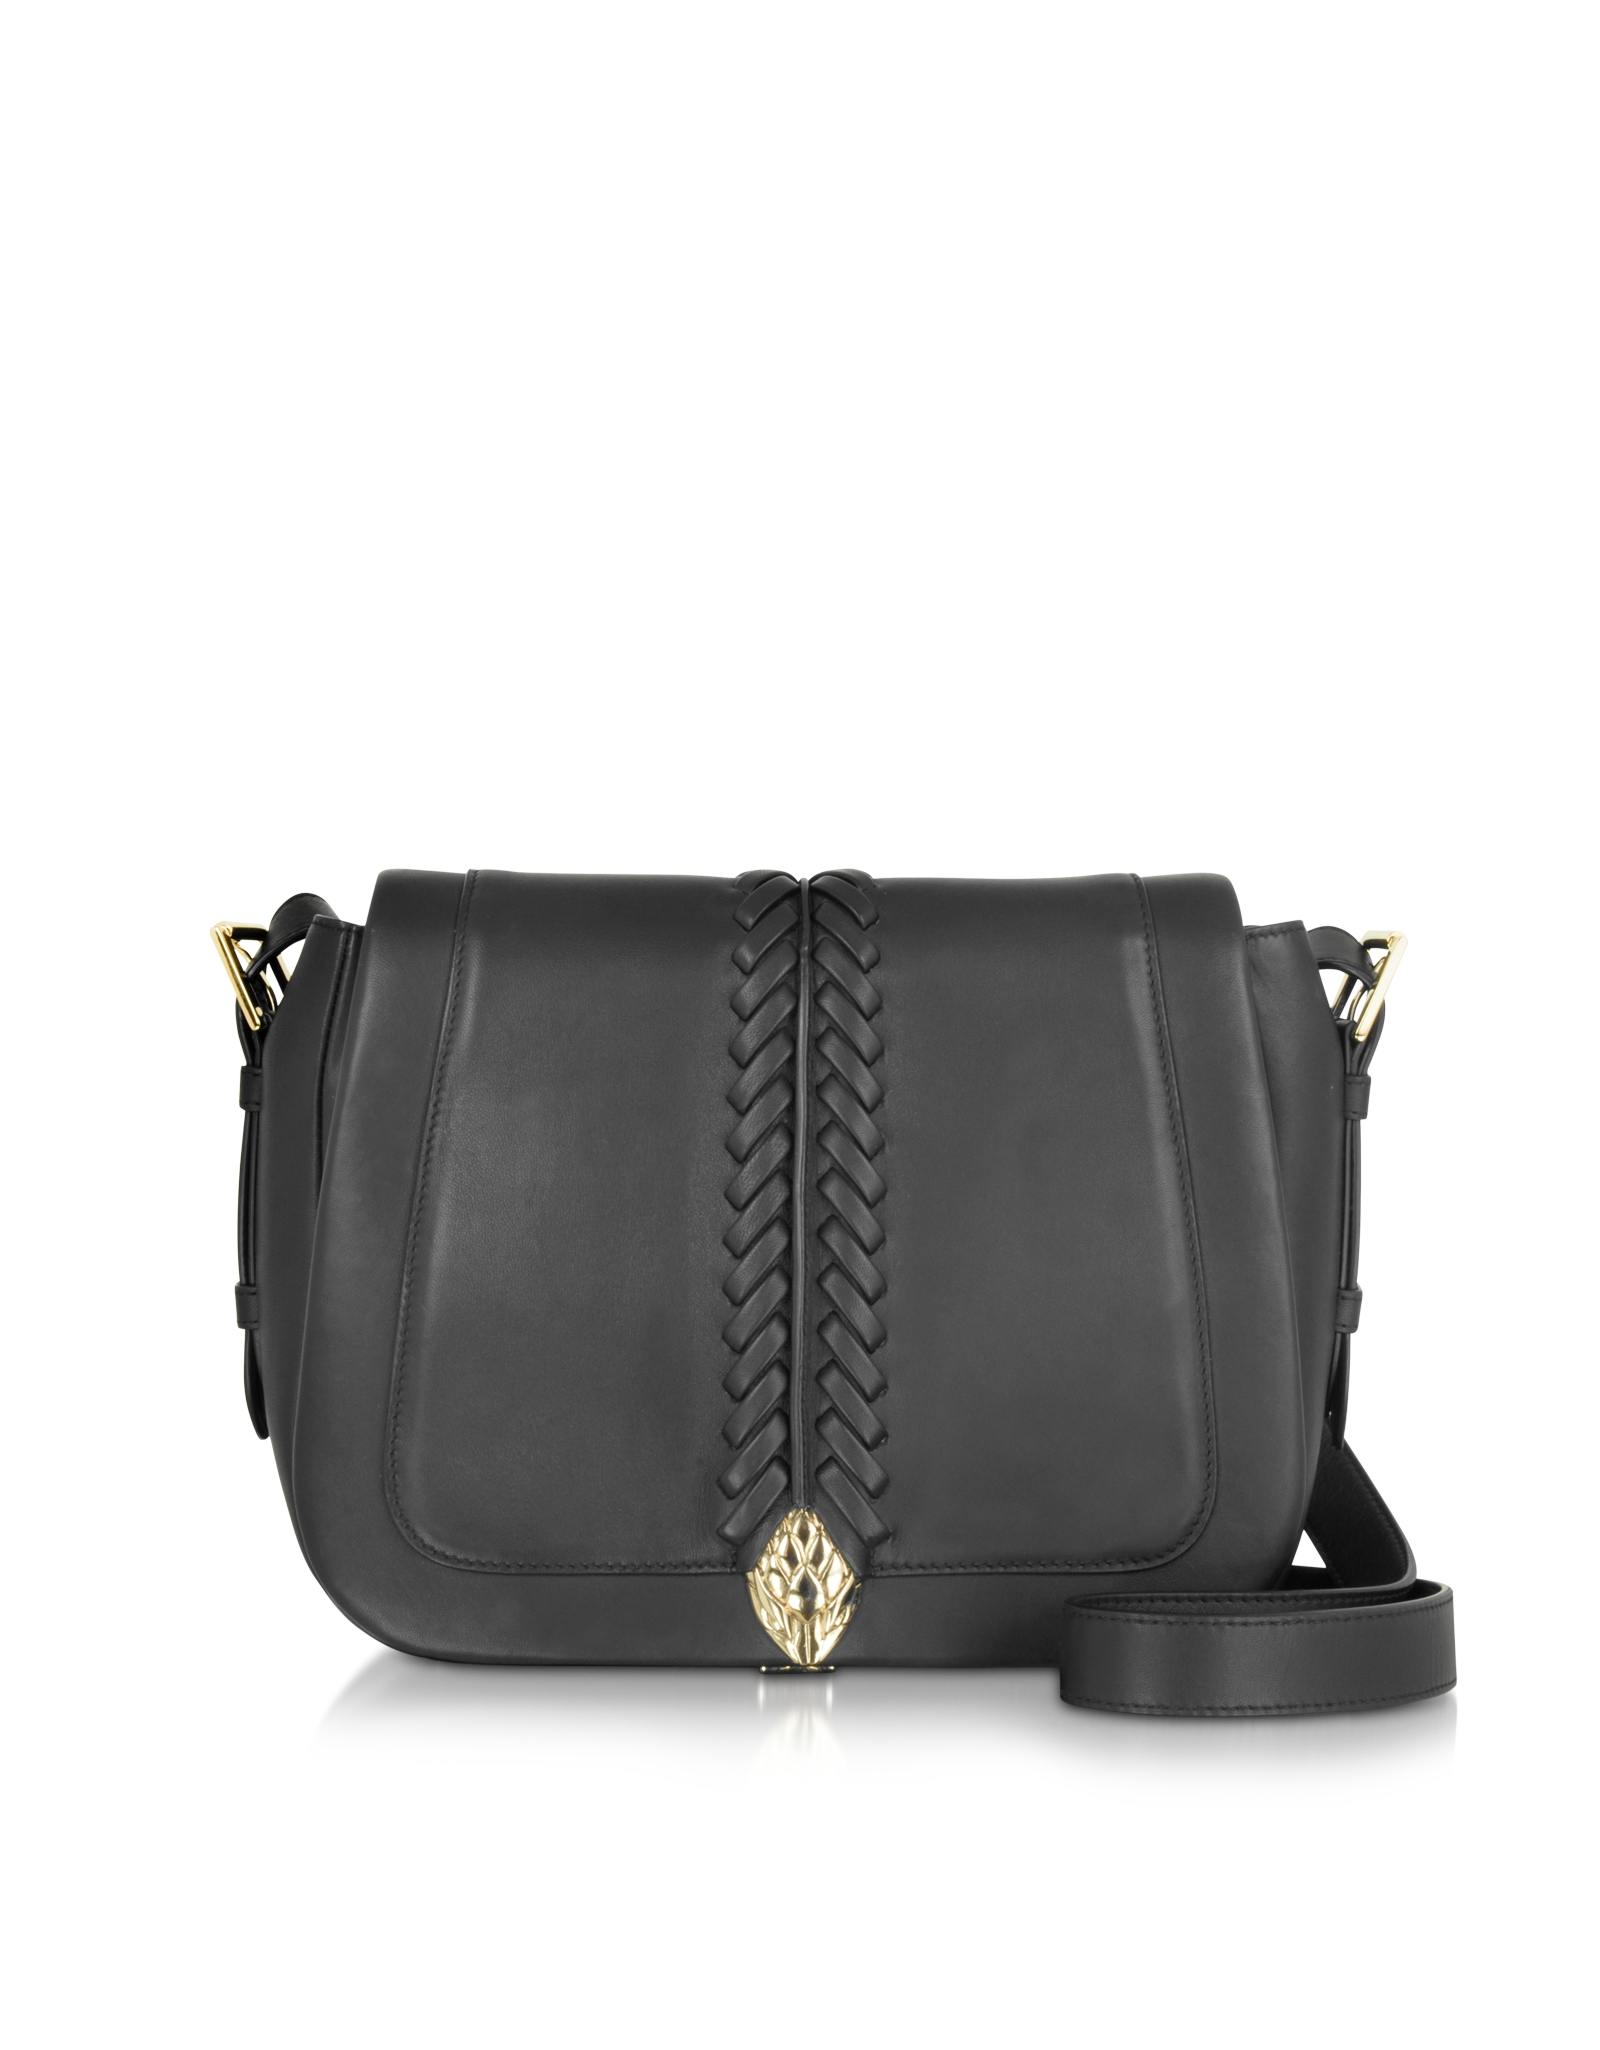 Roberto Cavalli Women Black Smoo... sale new arrival outlet ebay xgWgUsYnmS